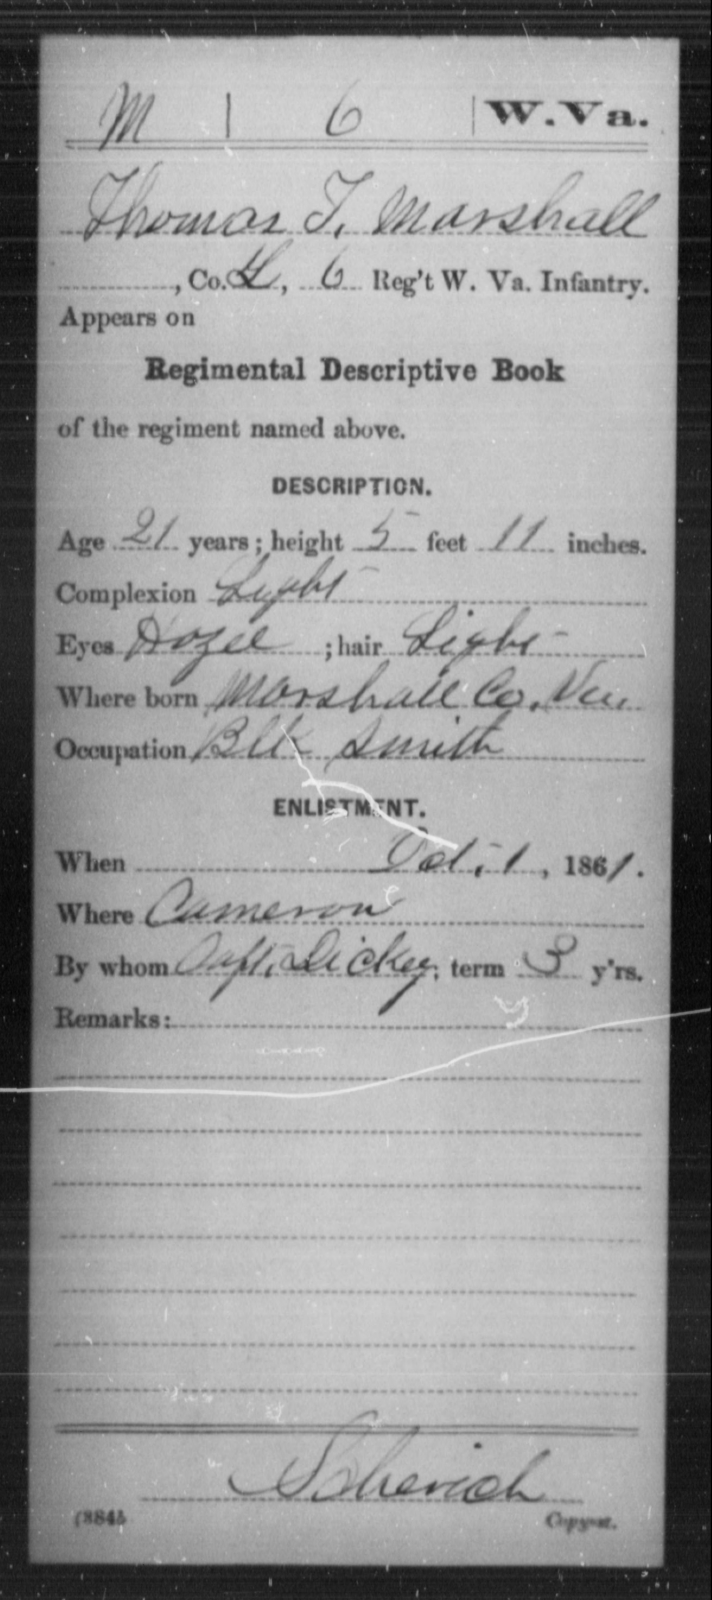 Marshall, Thomas T - Age 21, Year: 1861 - Miscellaneous Card Abstracts of Records - West Virginia